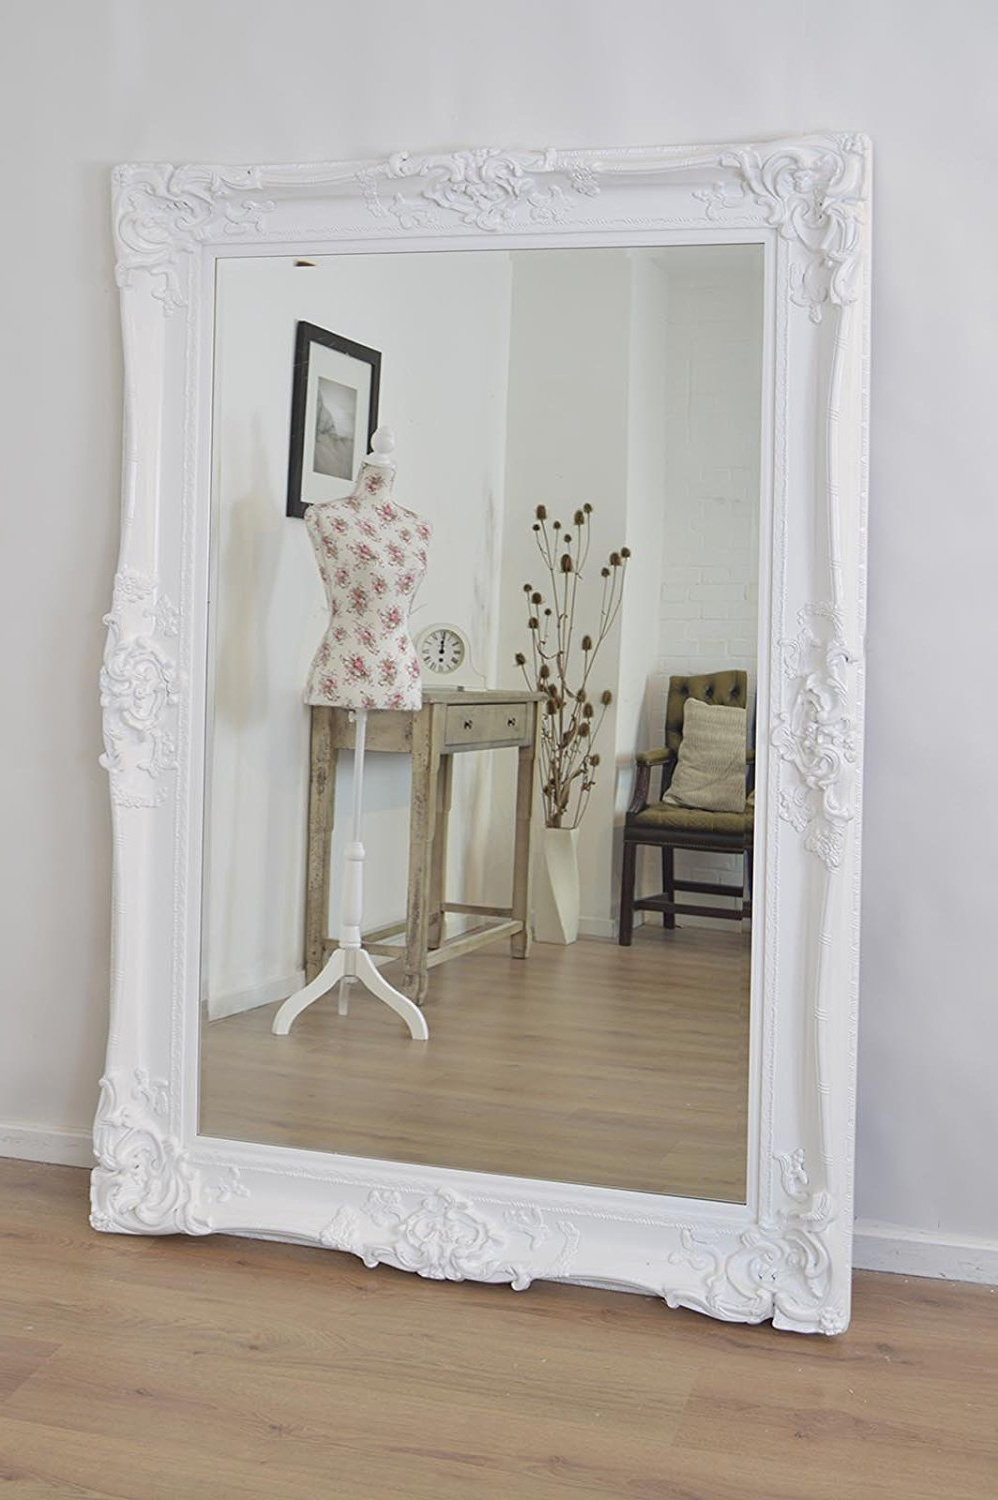 Large Mirror Wall Mirrors Floor Decoration Decorative Round Within 2020 Ornate Full Length Wall Mirrors (View 5 of 20)